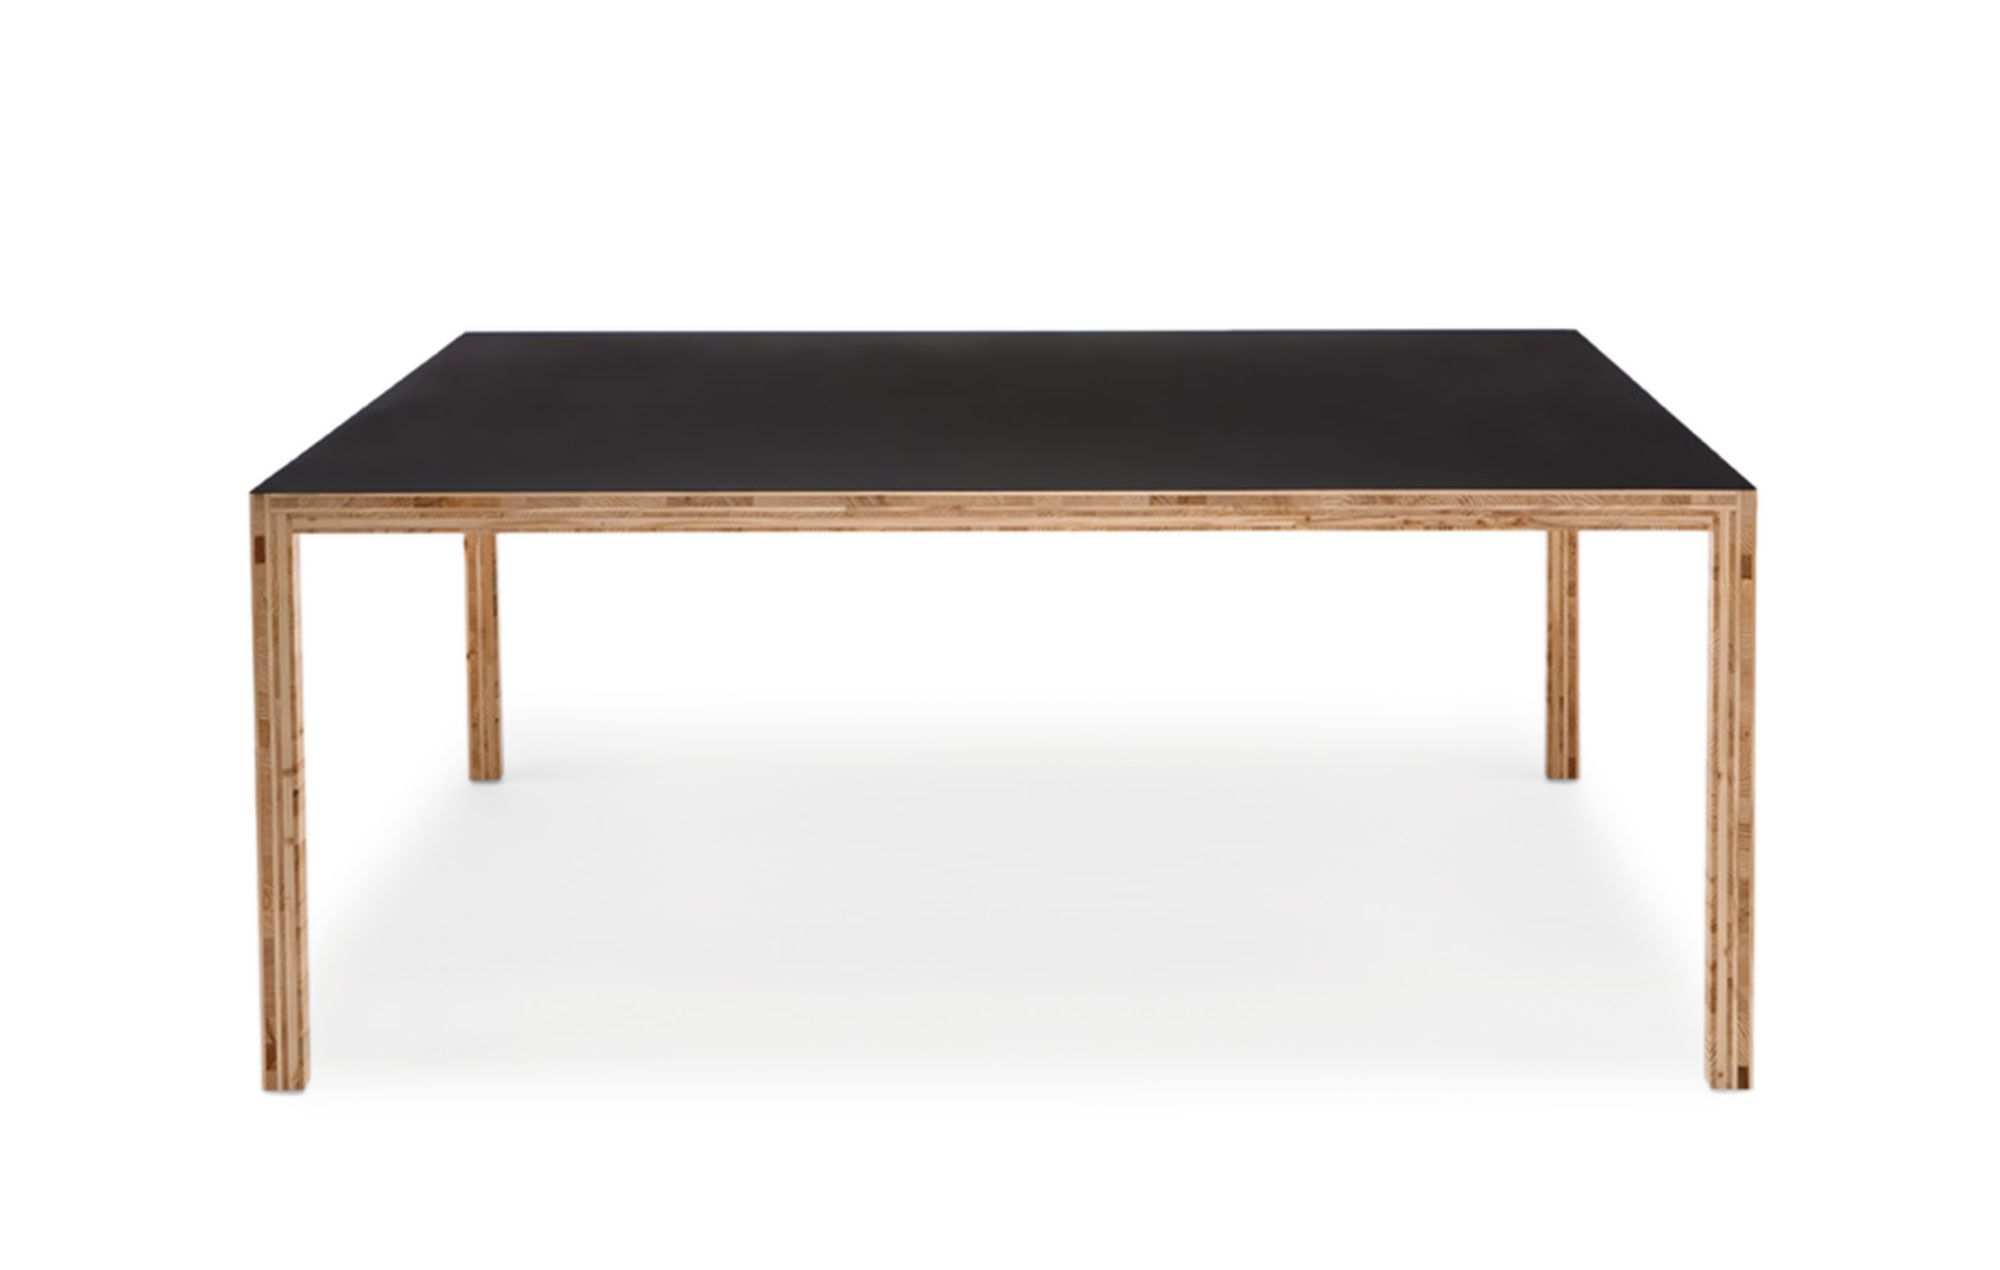 This Table Like Much Of Caruso St John S Work Refers To A Familiar